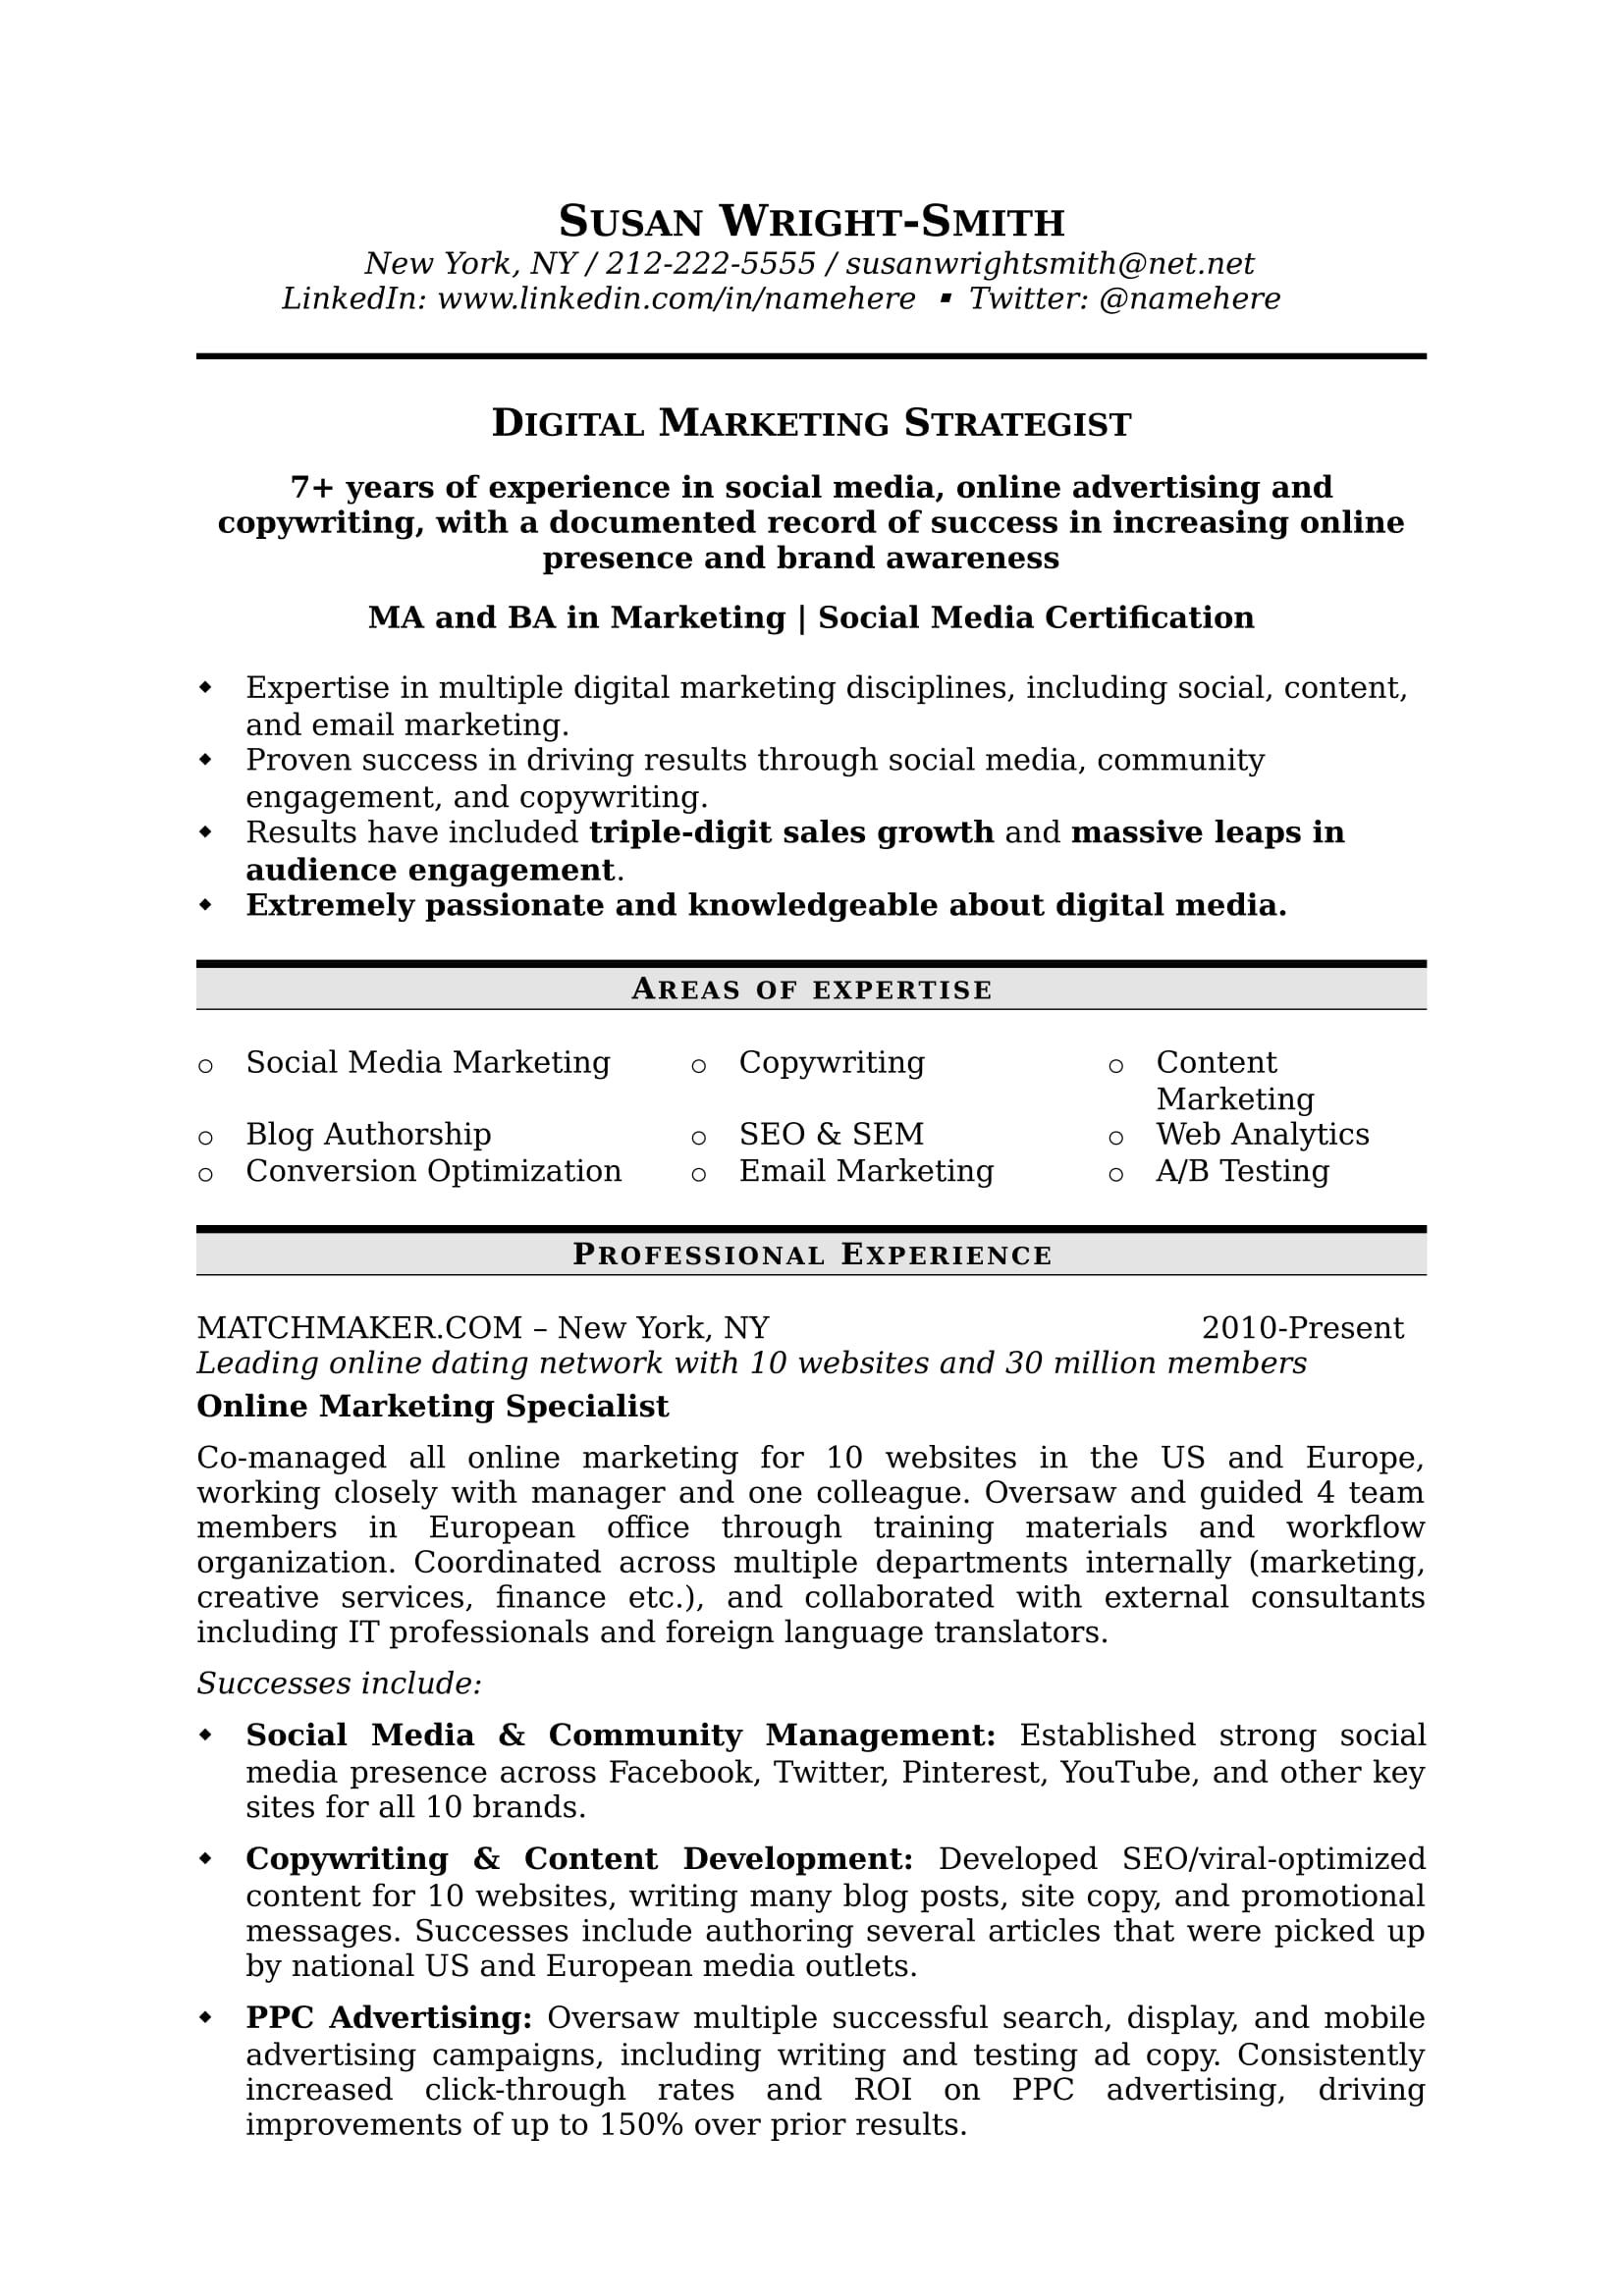 How To Write A Marketing Resume Hiring Managers Will Notice [Free .